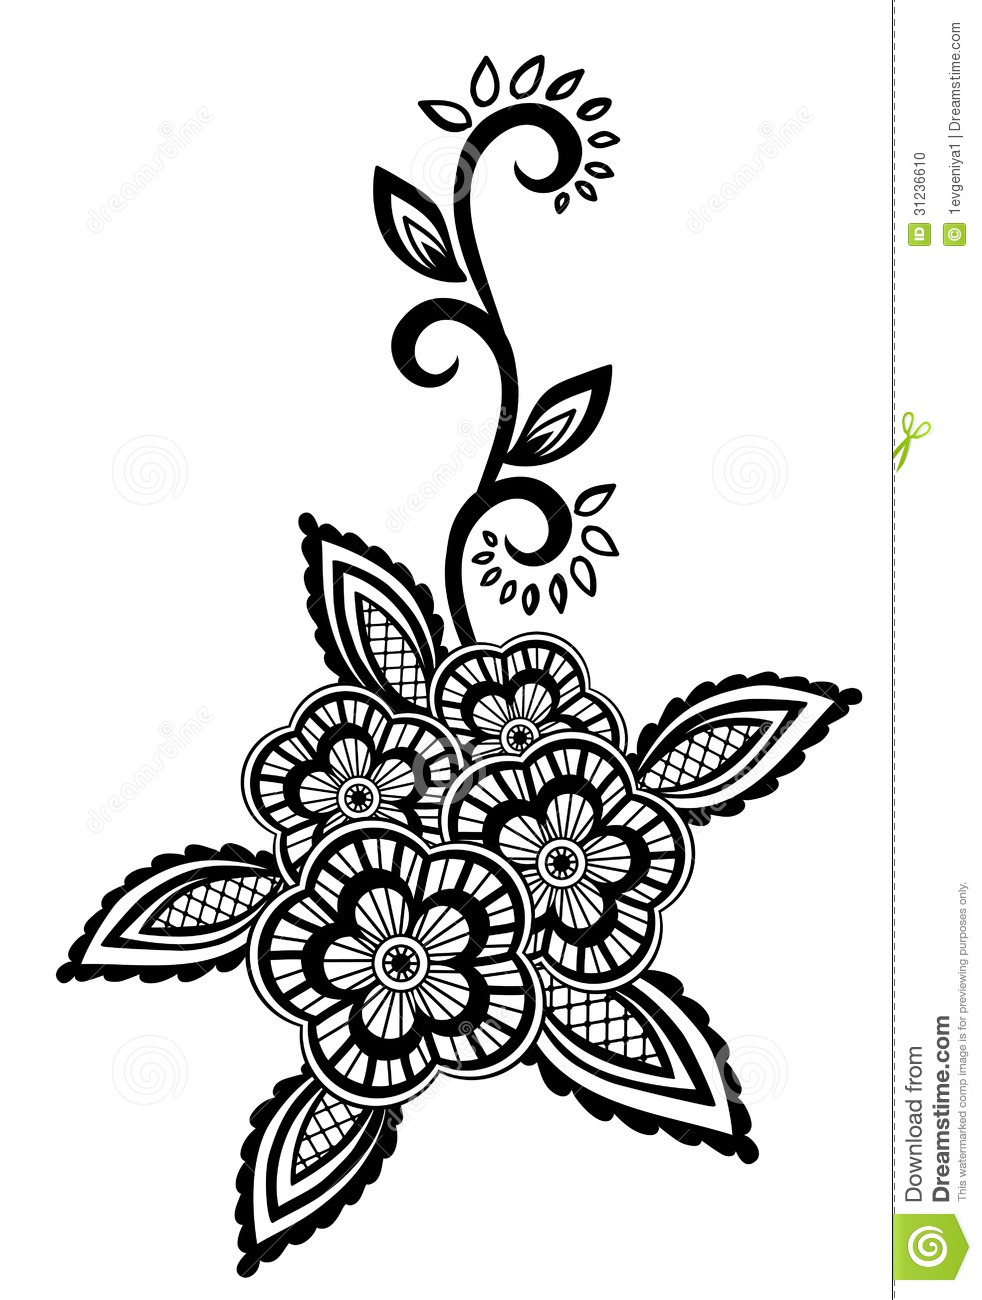 Flower Simple Design Black And White Comousar